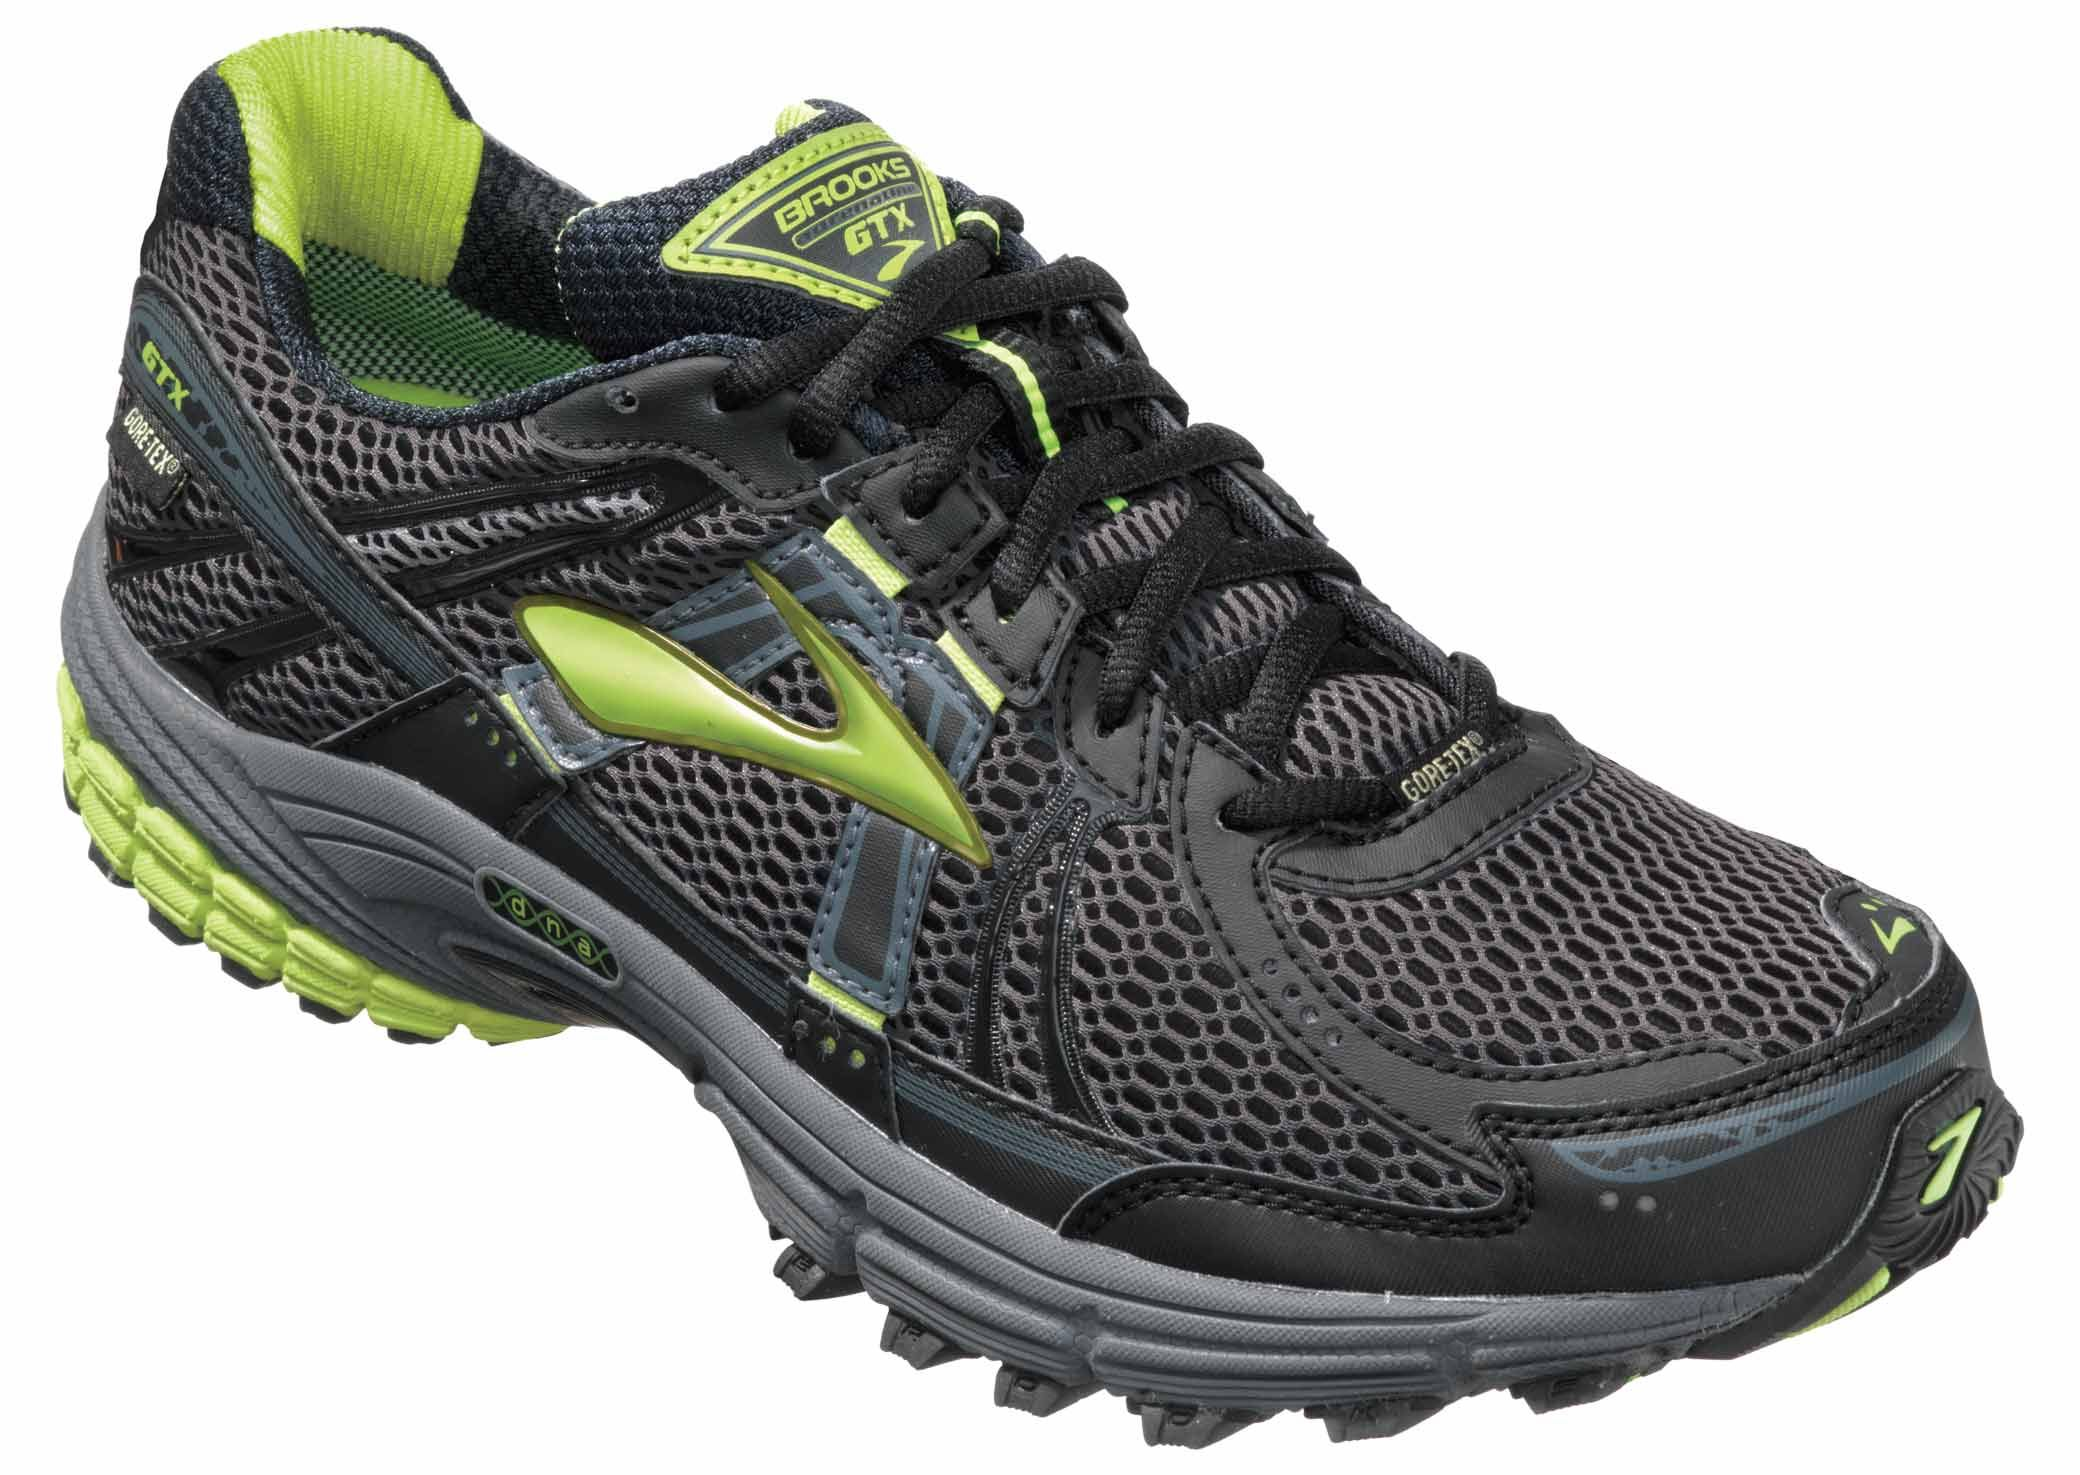 Waterproof running shoes for all